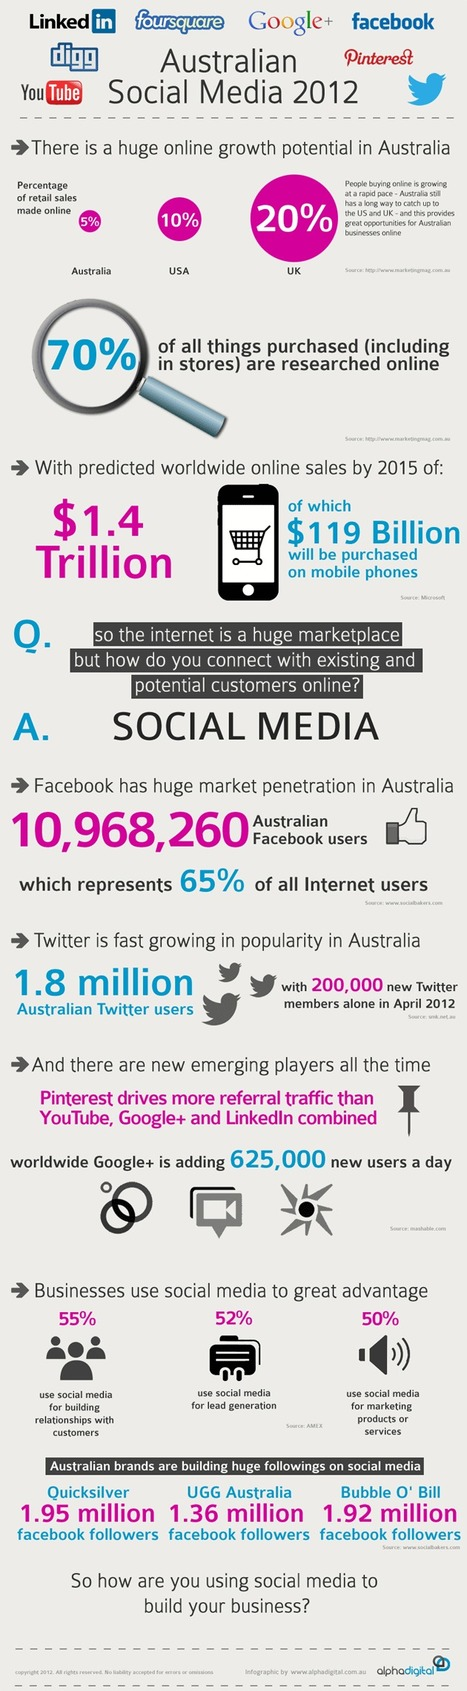 #SocialMedia In Australia 2012 | #Infographic | Social Media e Innovación Tecnológica | Scoop.it